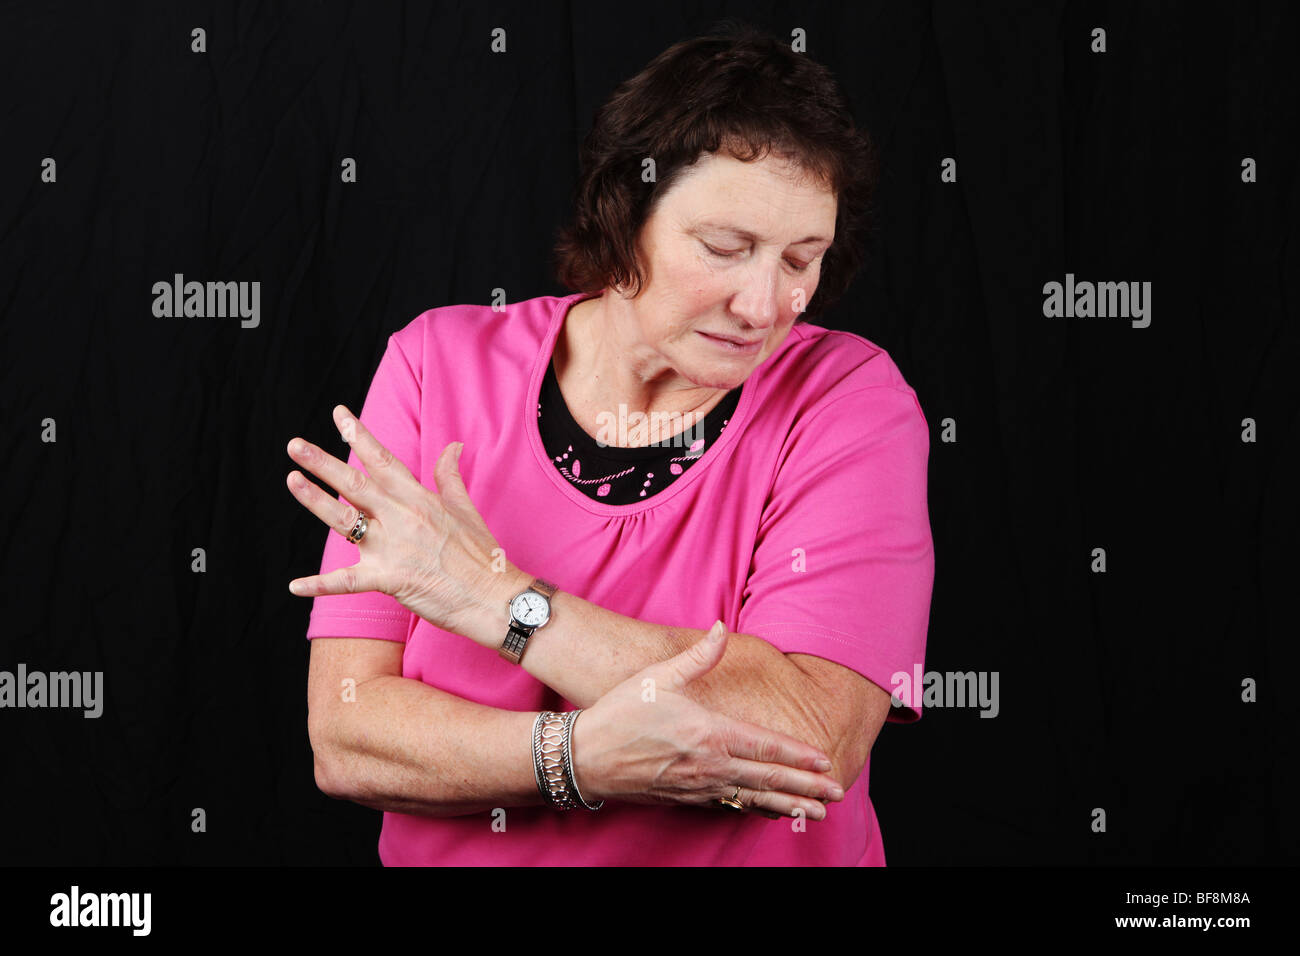 Late middle aged woman holding elbow joint suffering from severe arthritis pain tennis elbow or sports related injury - Stock Image